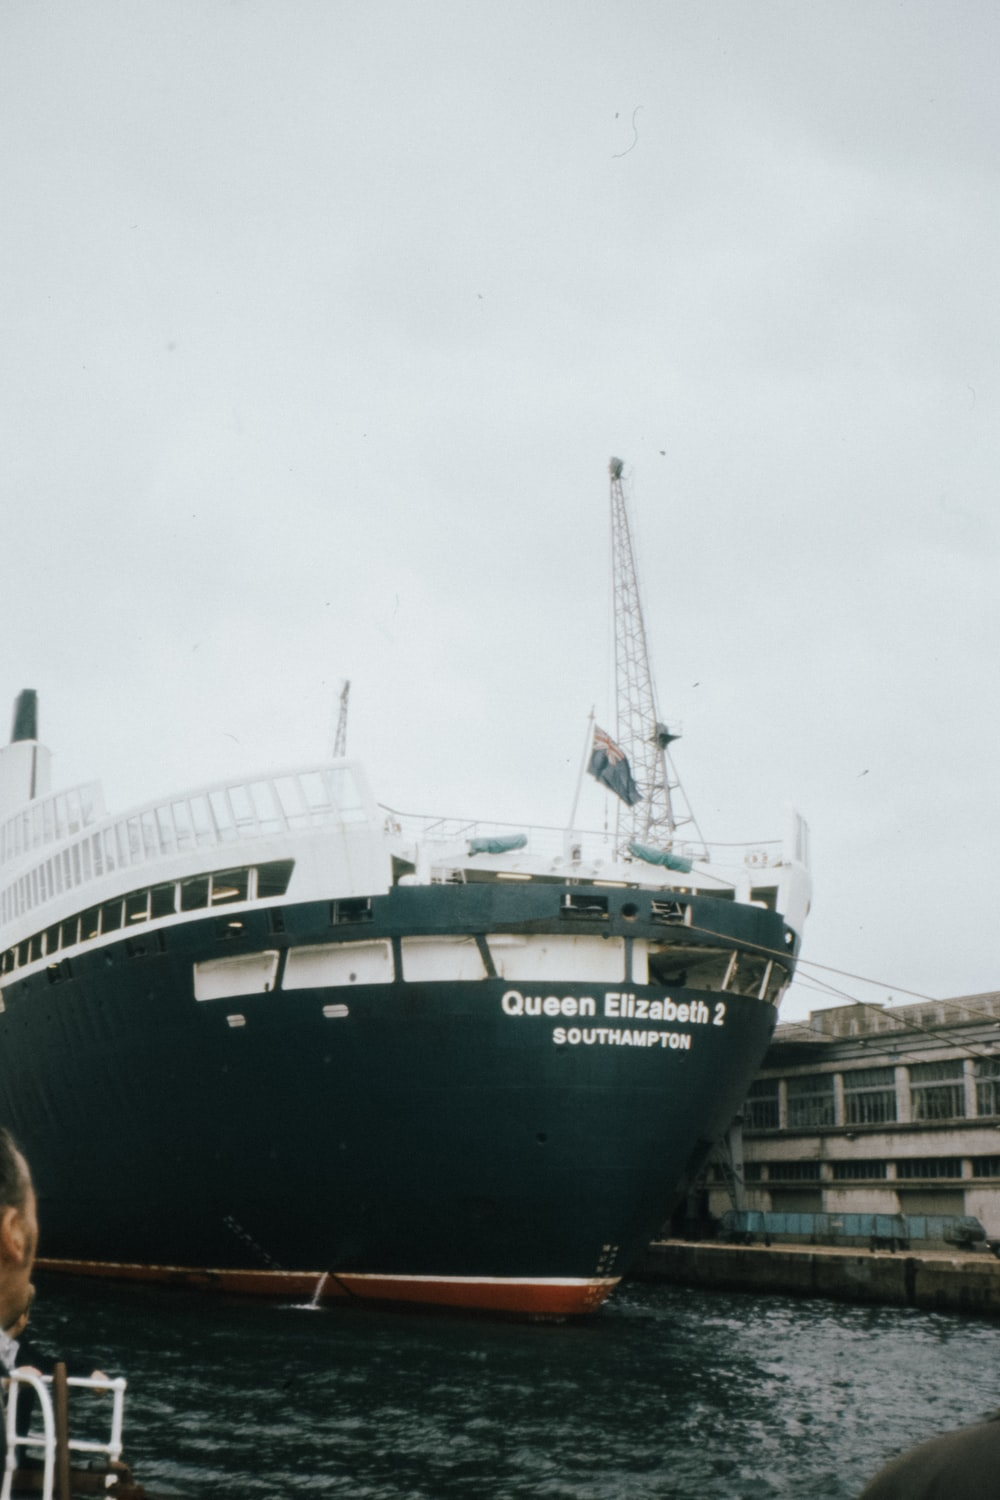 green and white ship on dock during daytime